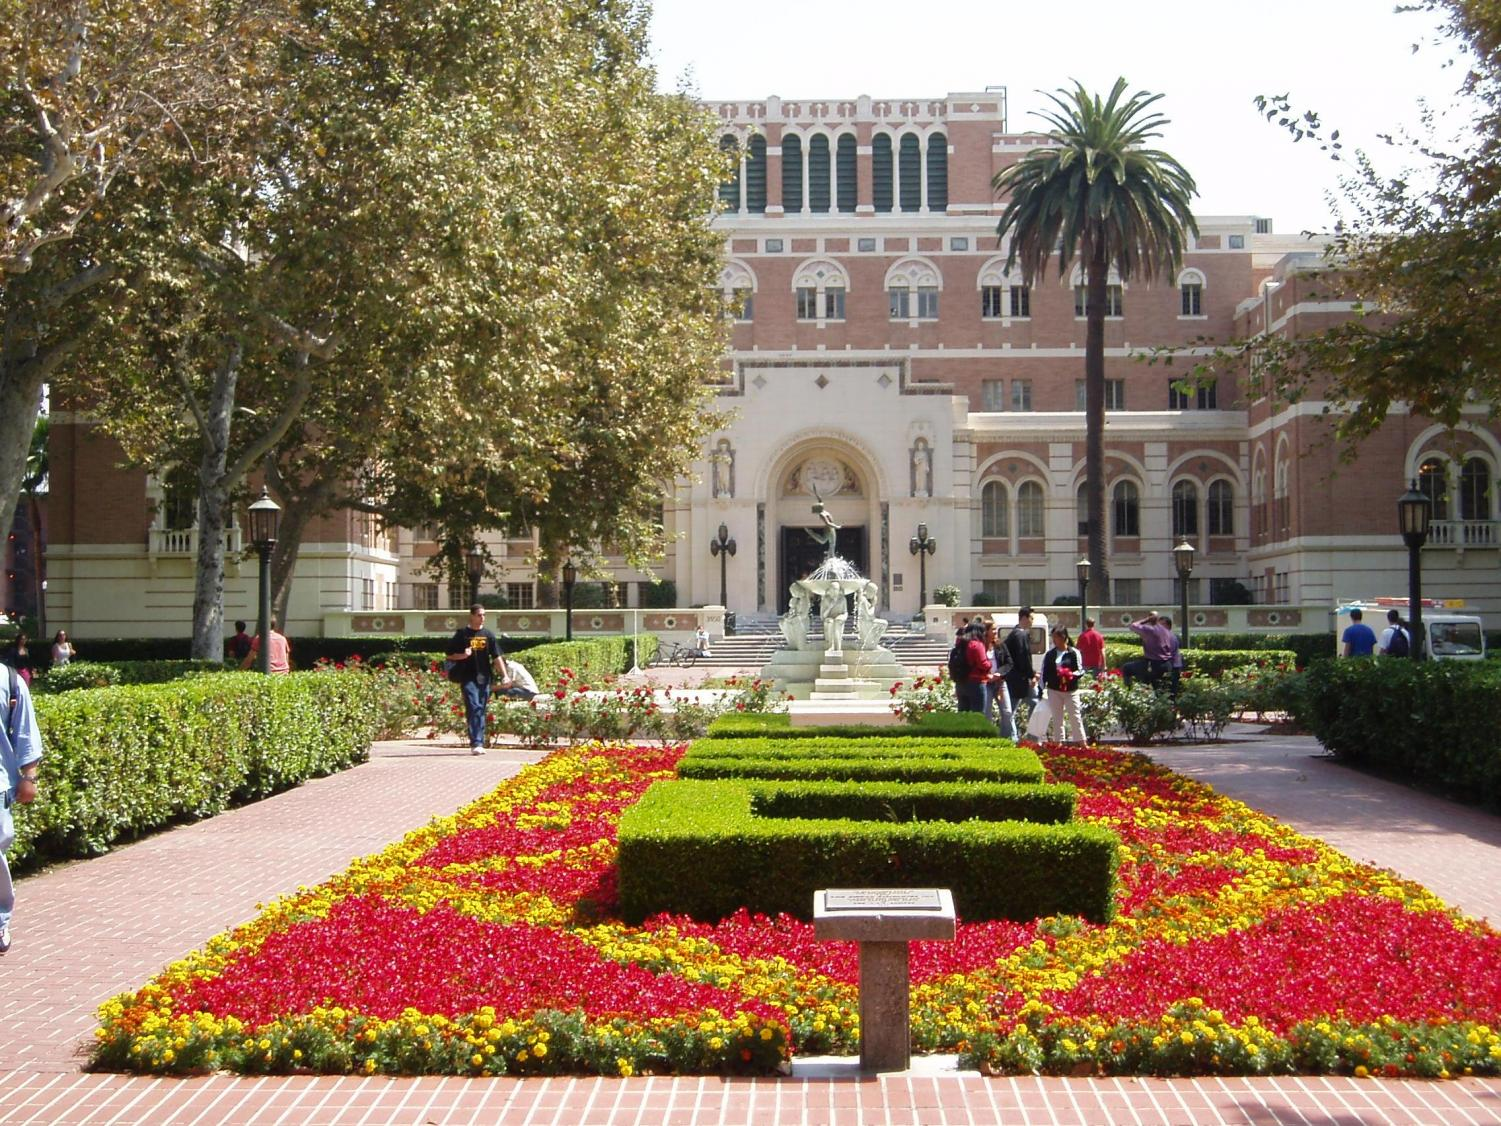 The University of Southern California is one of the more prominent universities involved in the scandal.